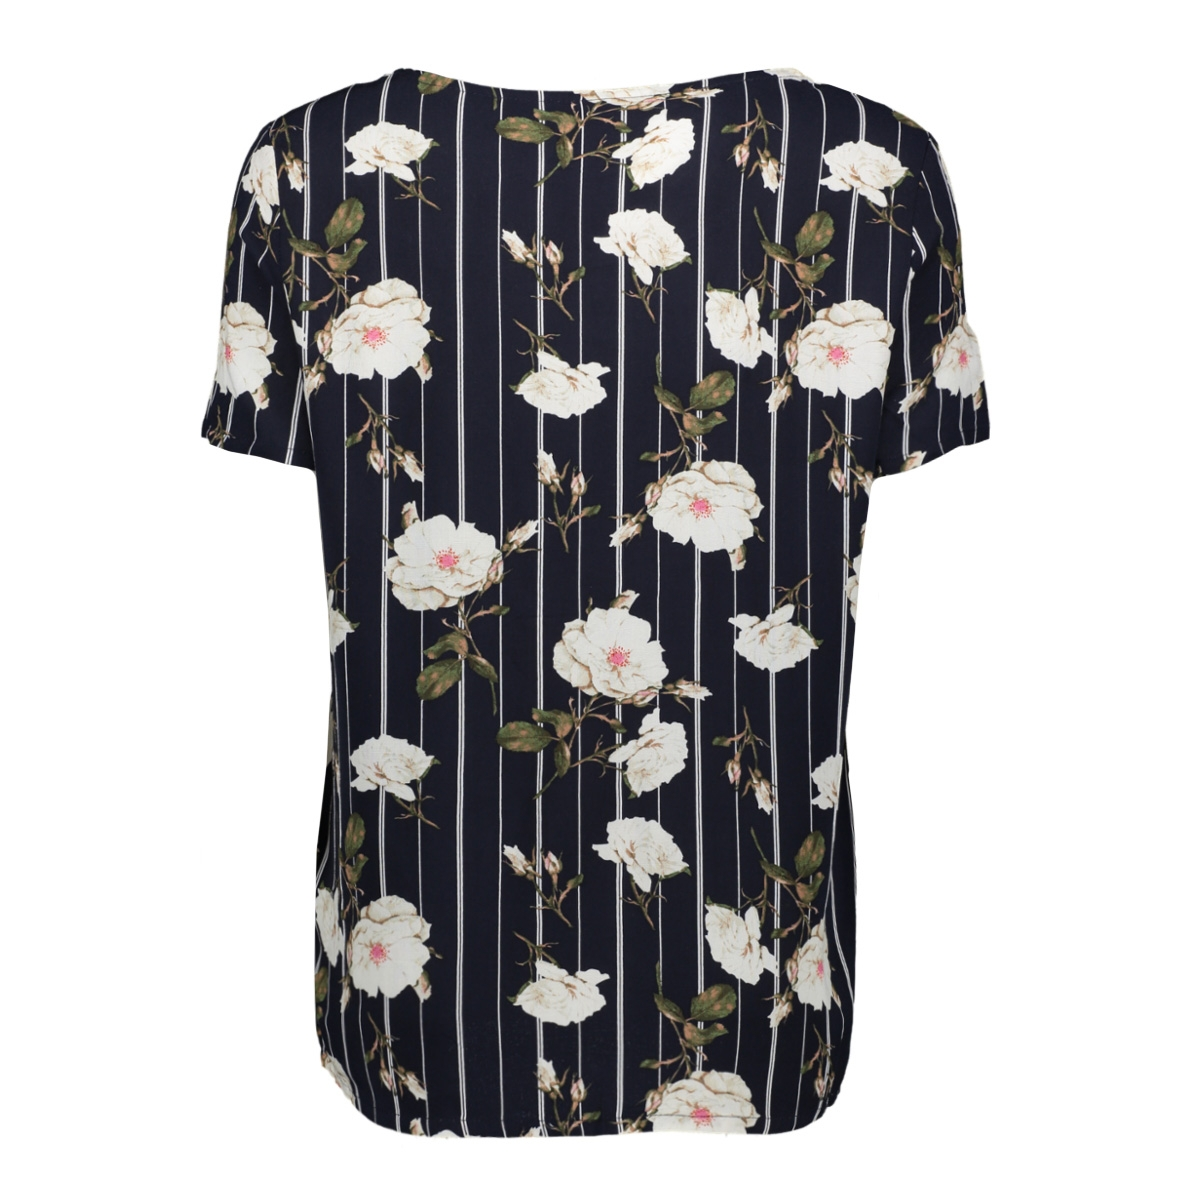 vmsimply easy ss top 10211480 vero moda t-shirt night sky/tuva